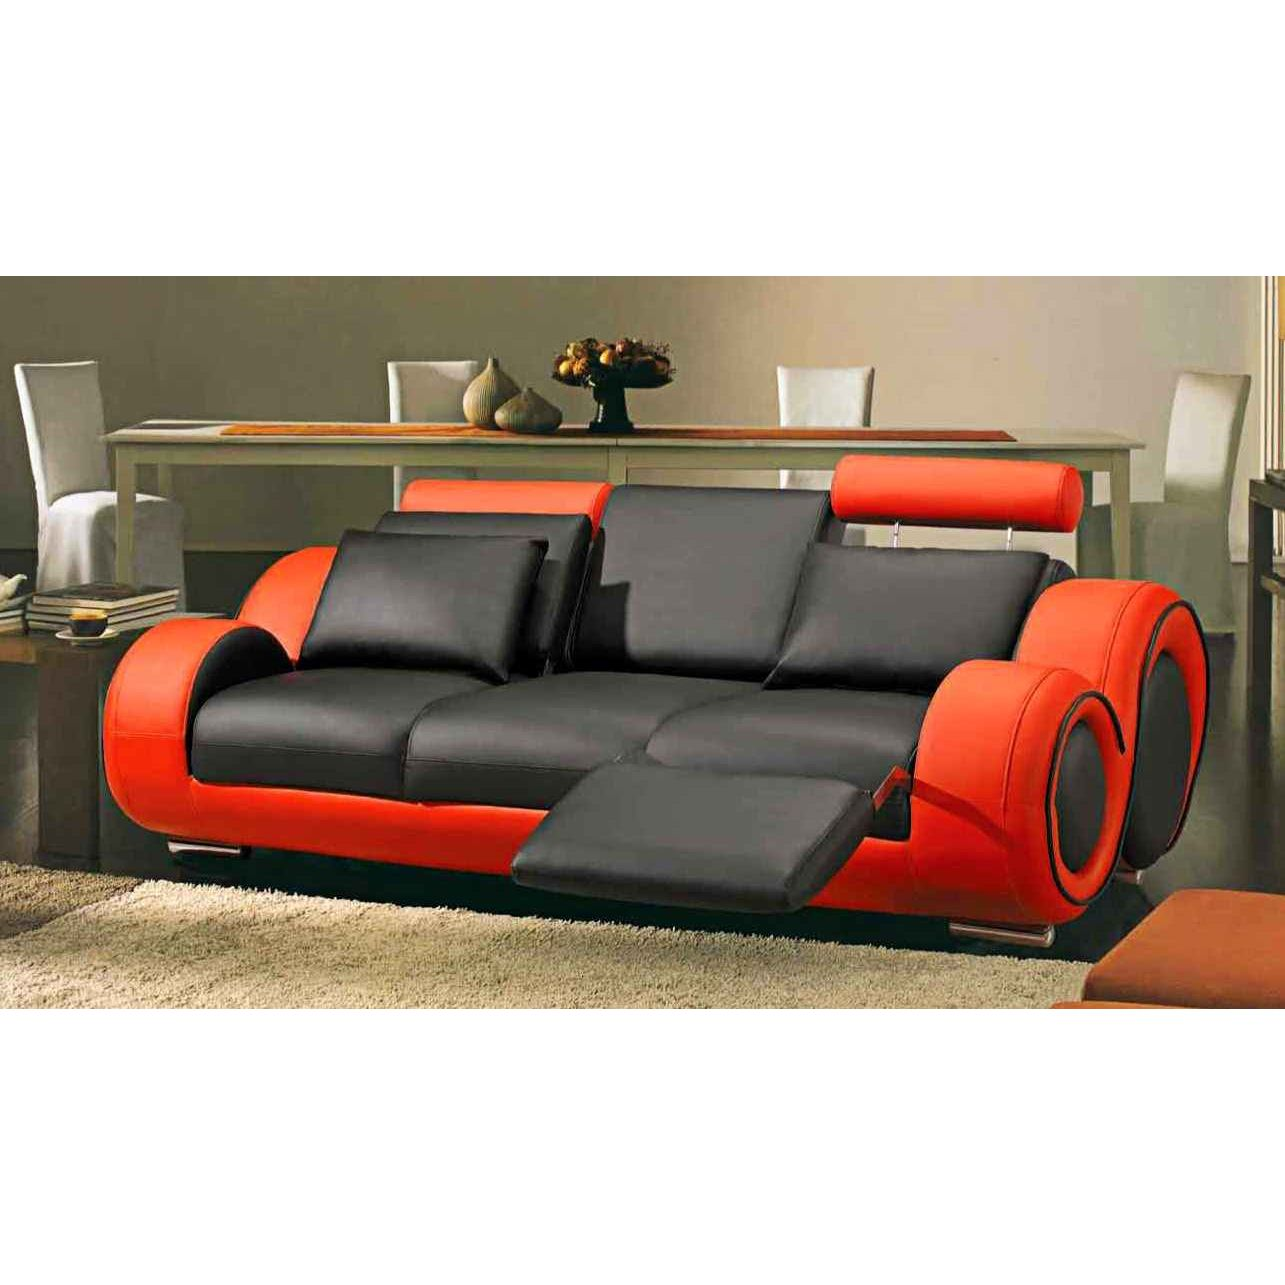 Deco in paris canape design 3 places cuir noir et rouge tetieres relax oslo - Canape en cuir design ...